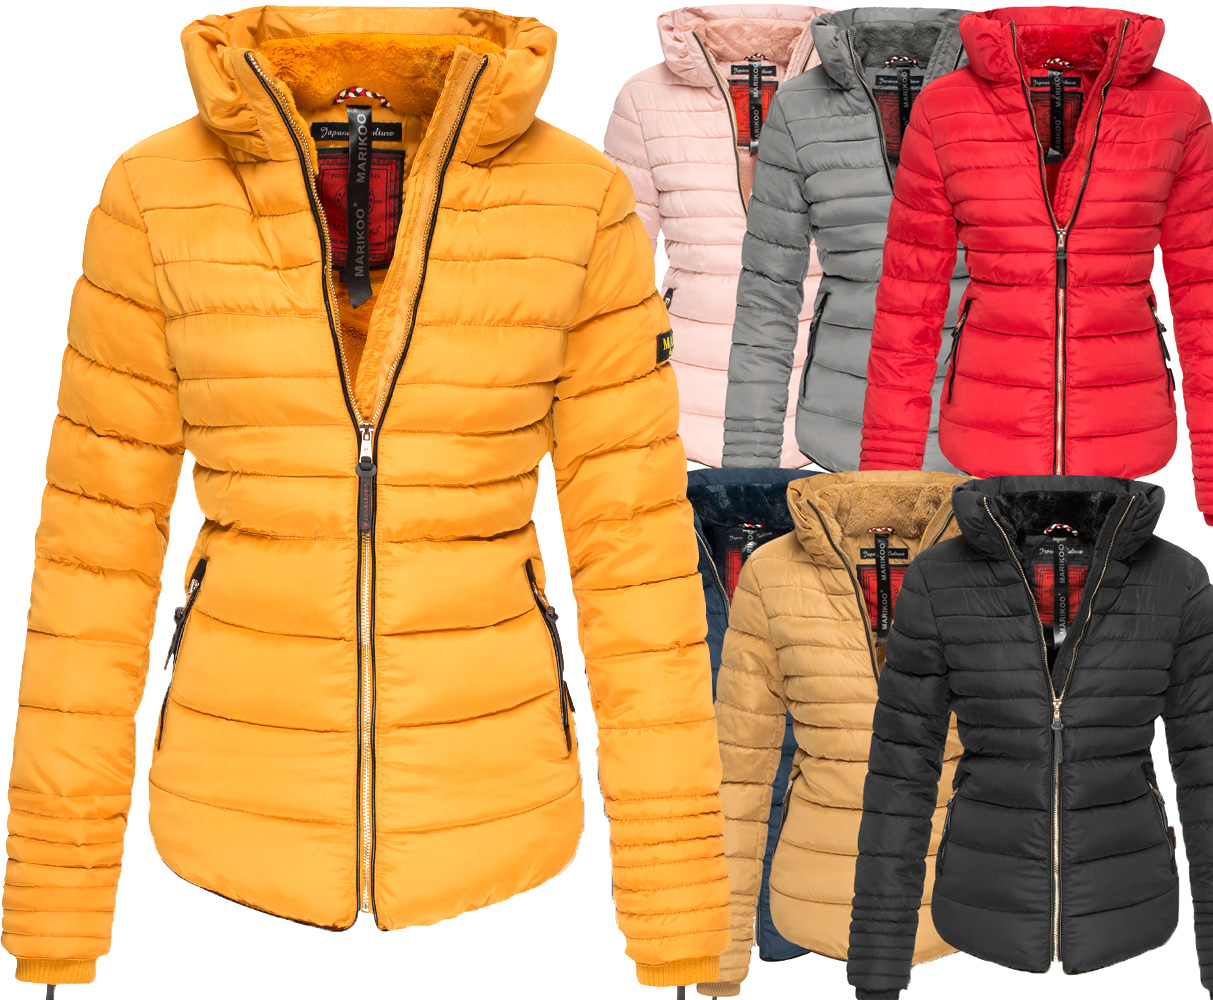 Women Quilted Amber2 Parka Marikoo Jacket Details About Cozy Warm Winter Lining ´s 35ARjL4